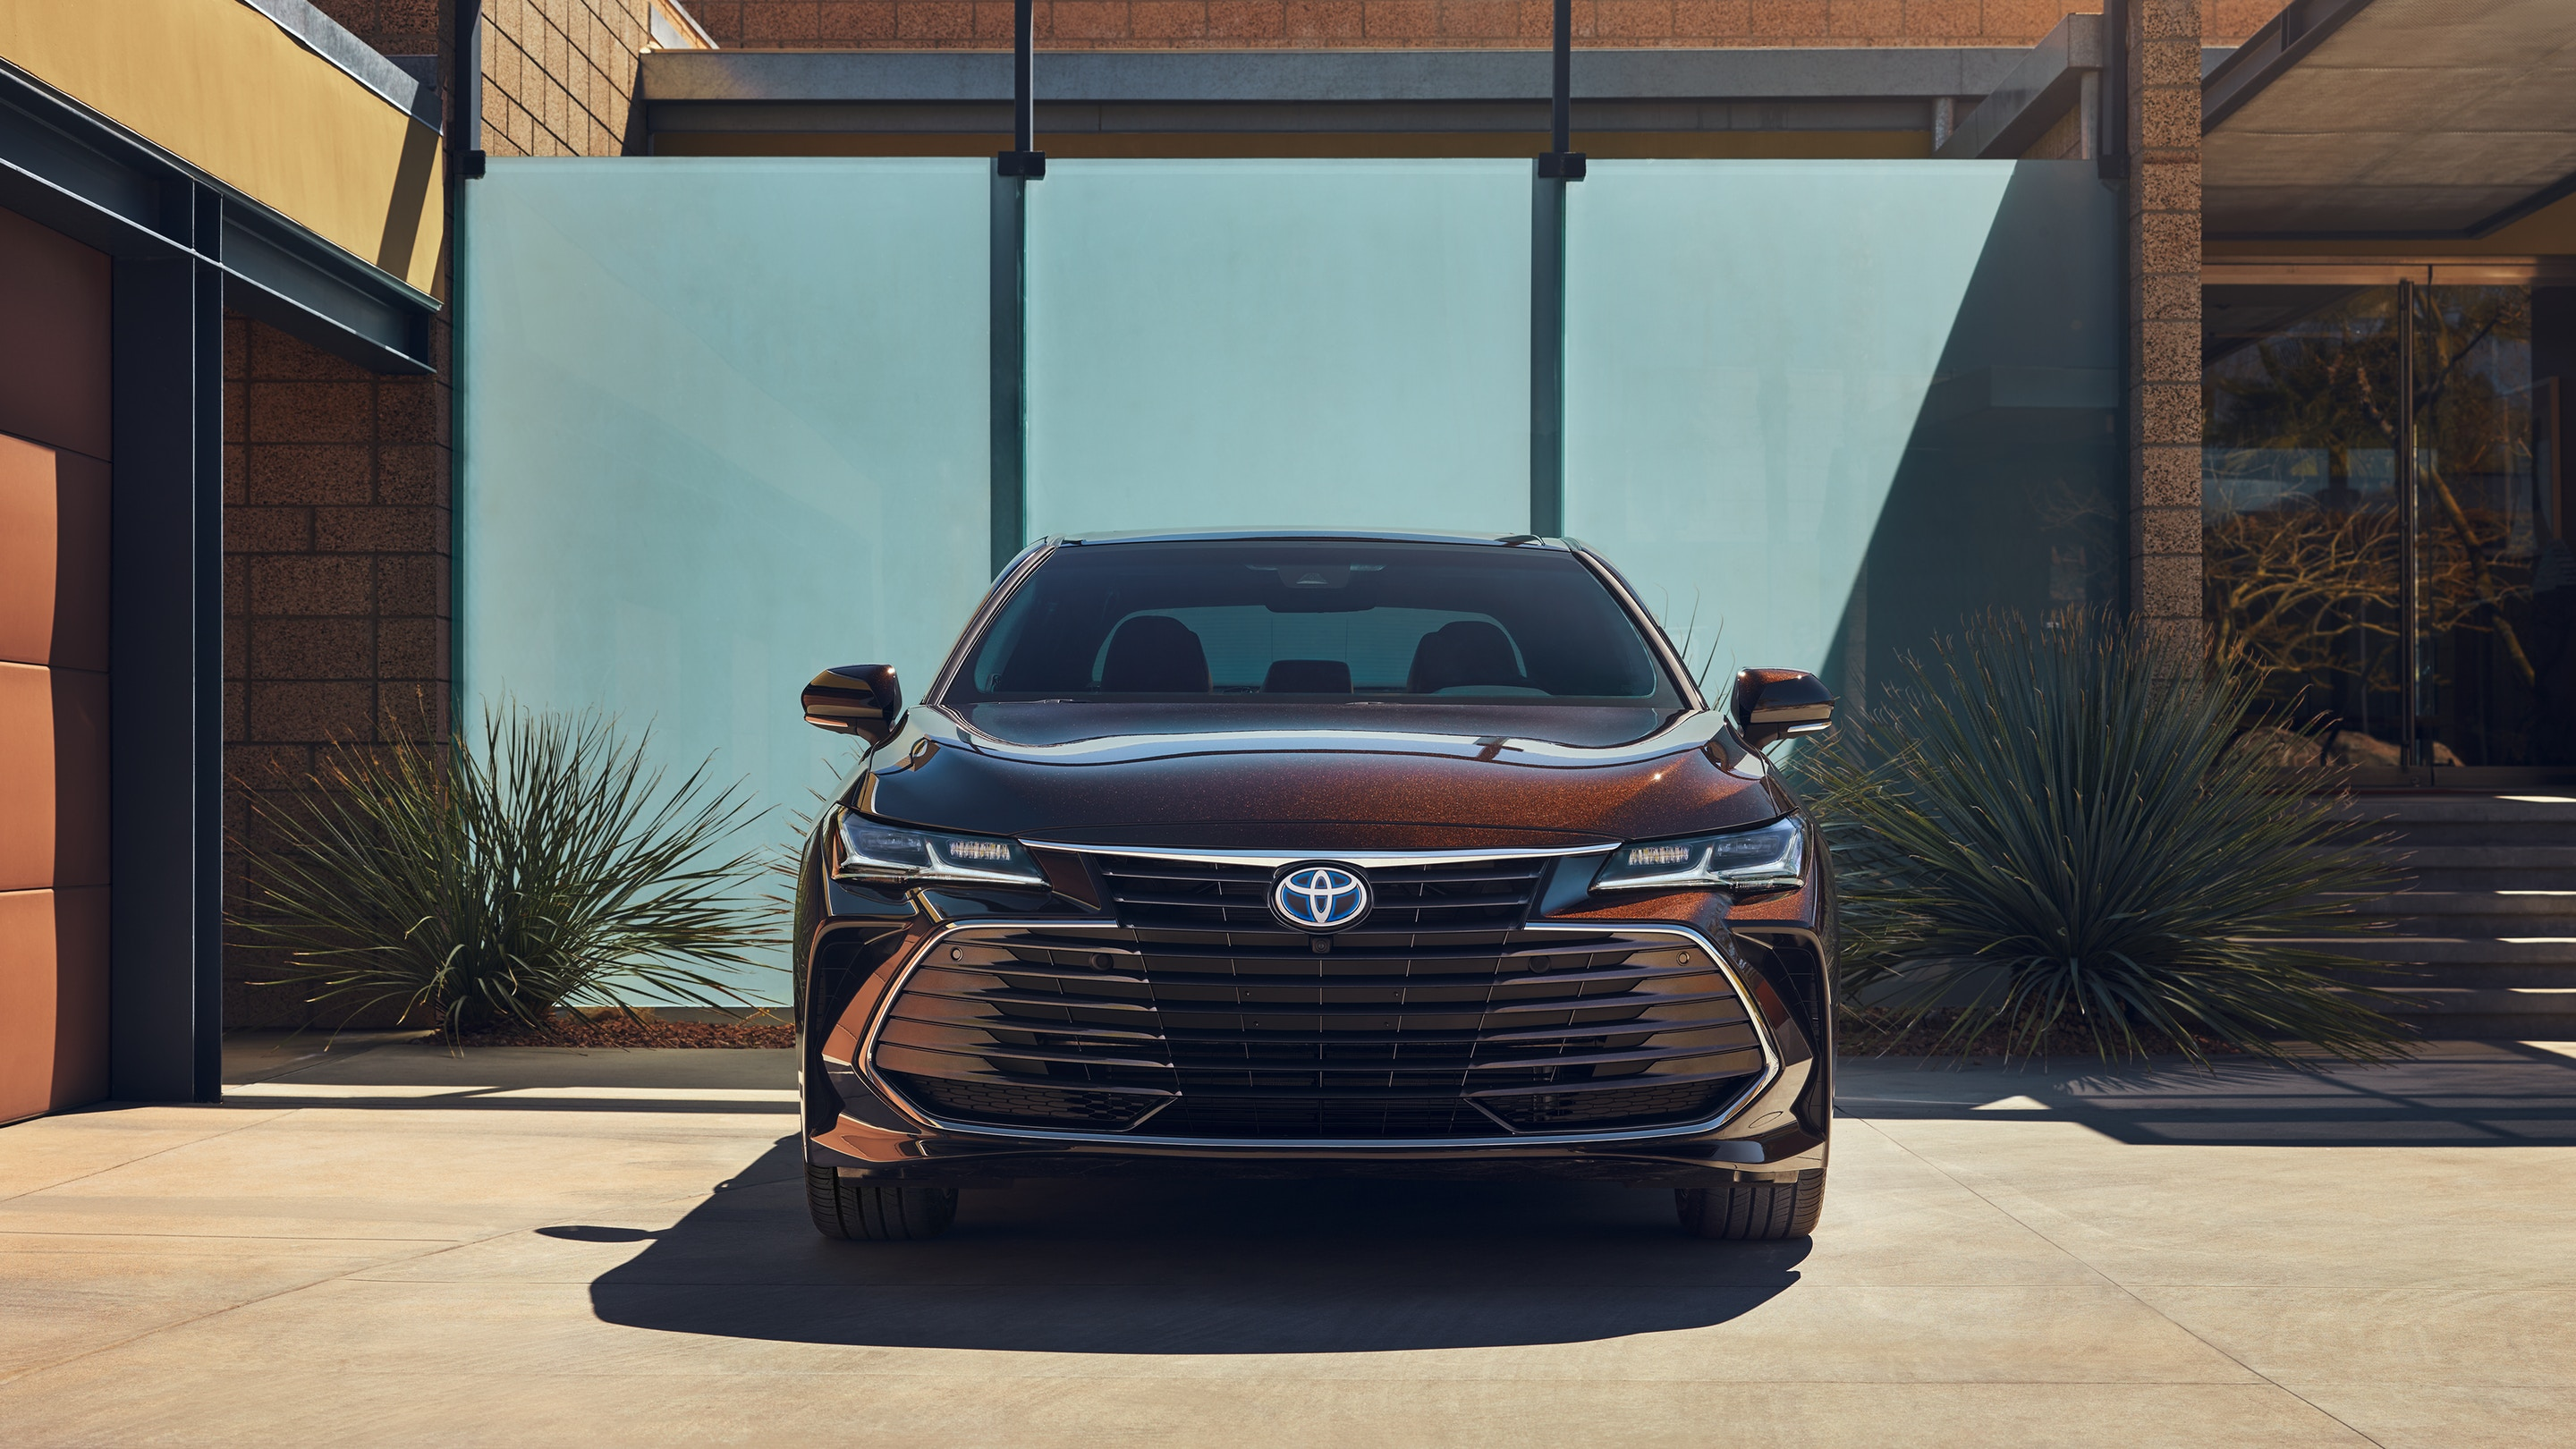 2019 Toyota Avalon for Sale near Ankeny, IA